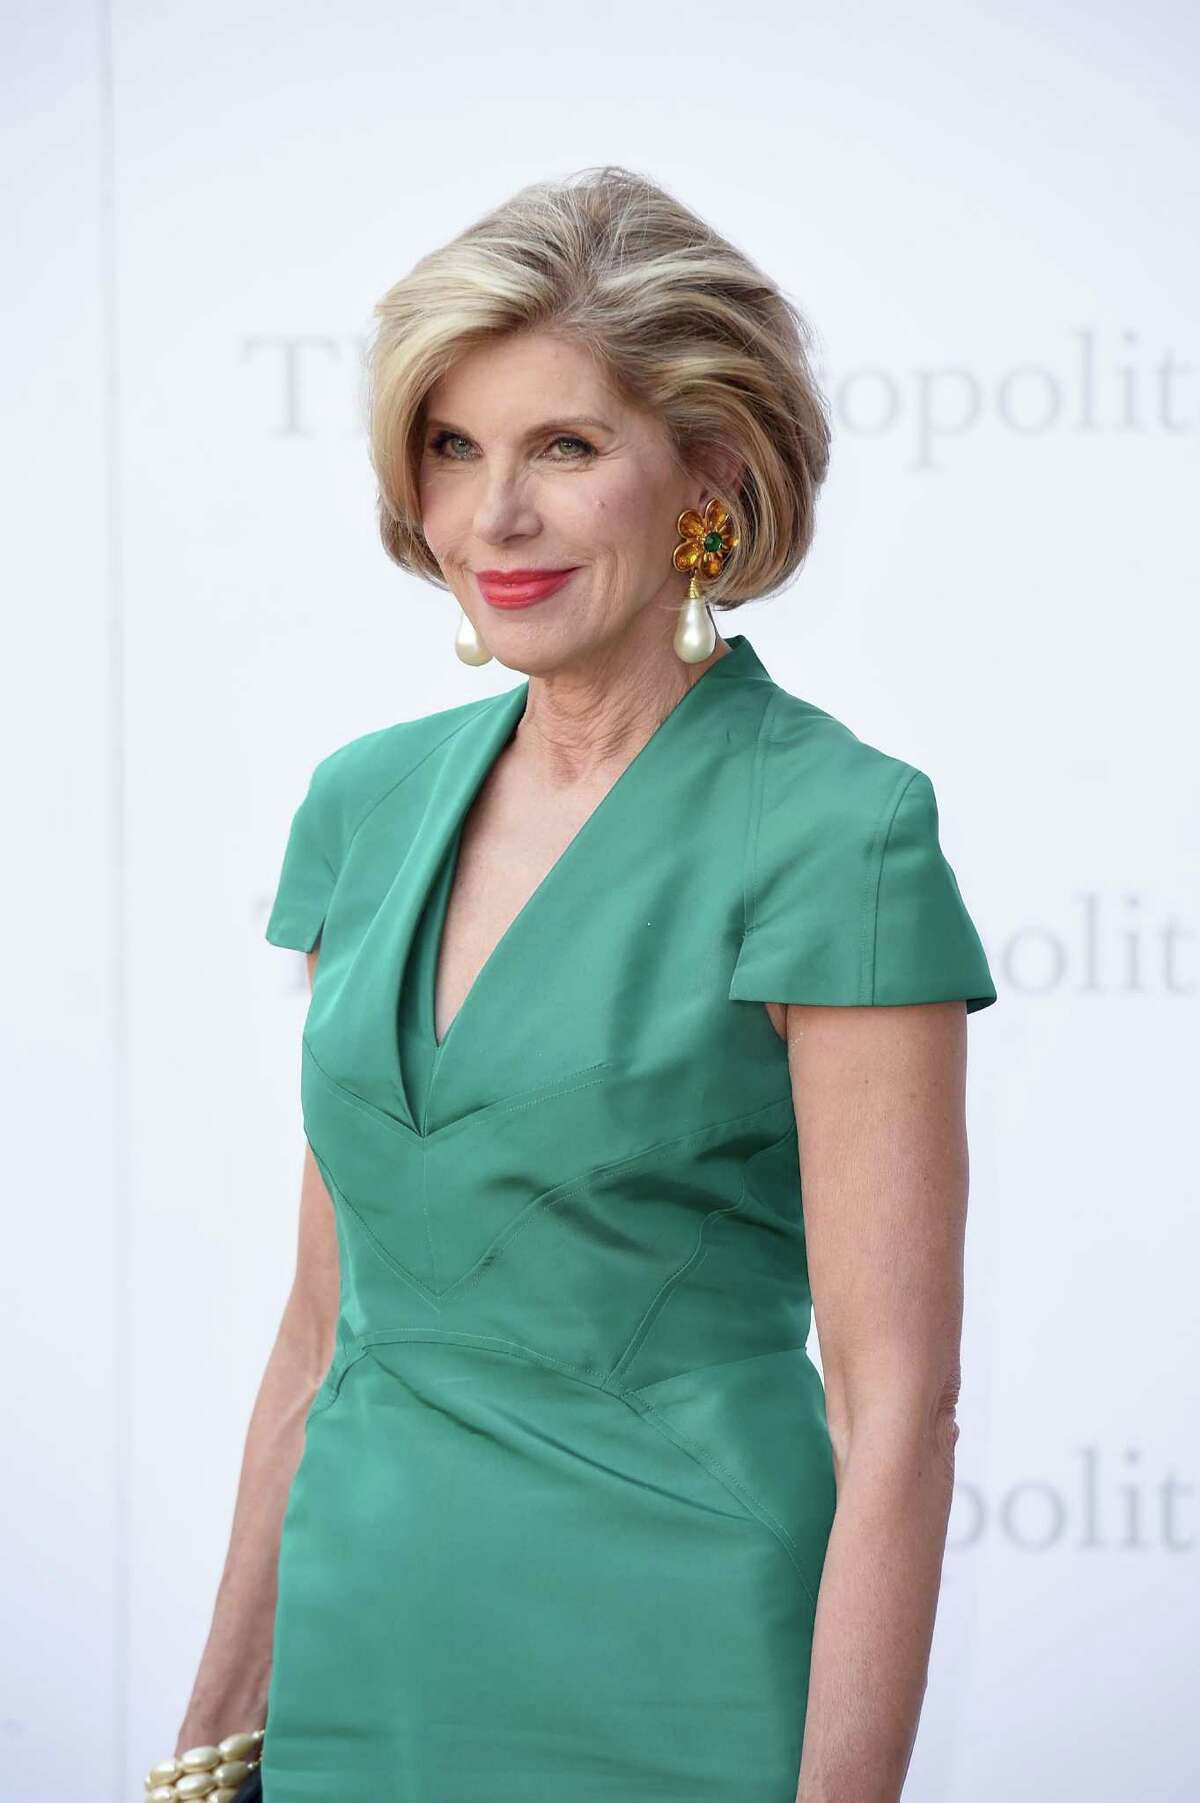 """NEW YORK, NY - SEPTEMBER 26: Christine Baranski attends the Met Opera 2016-2017 Season Opening Performance of """"Tristan Und Isolde"""" at The Metropolitan Opera House on September 26, 2016 in New York City. (Photo by Nicholas Hunt/Getty Images)"""